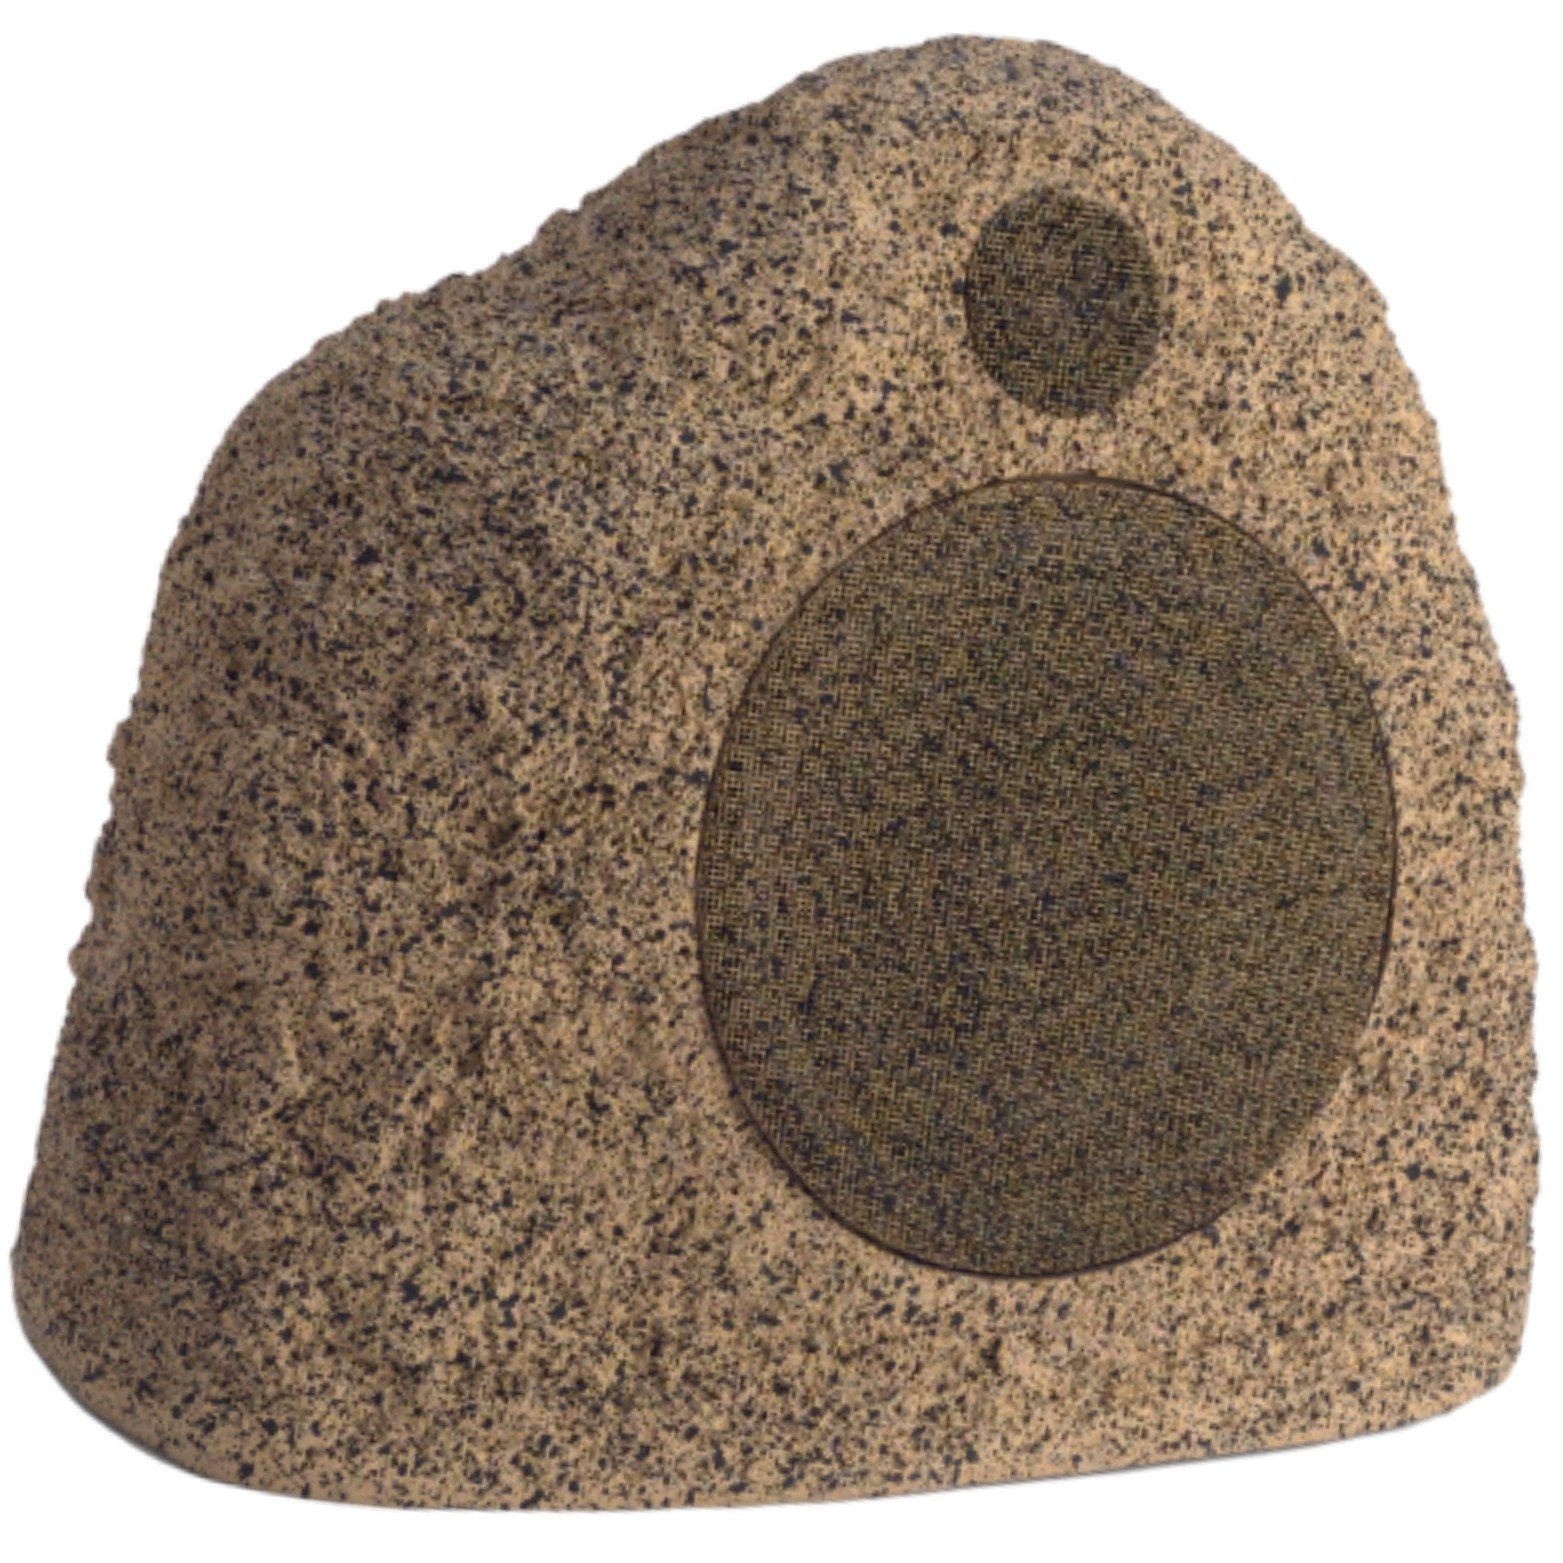 Stereostone Cinema Rock Outdoor Speaker 8 Inch Davinci Rock Speaker (Brown Sandstone) by Stereostone